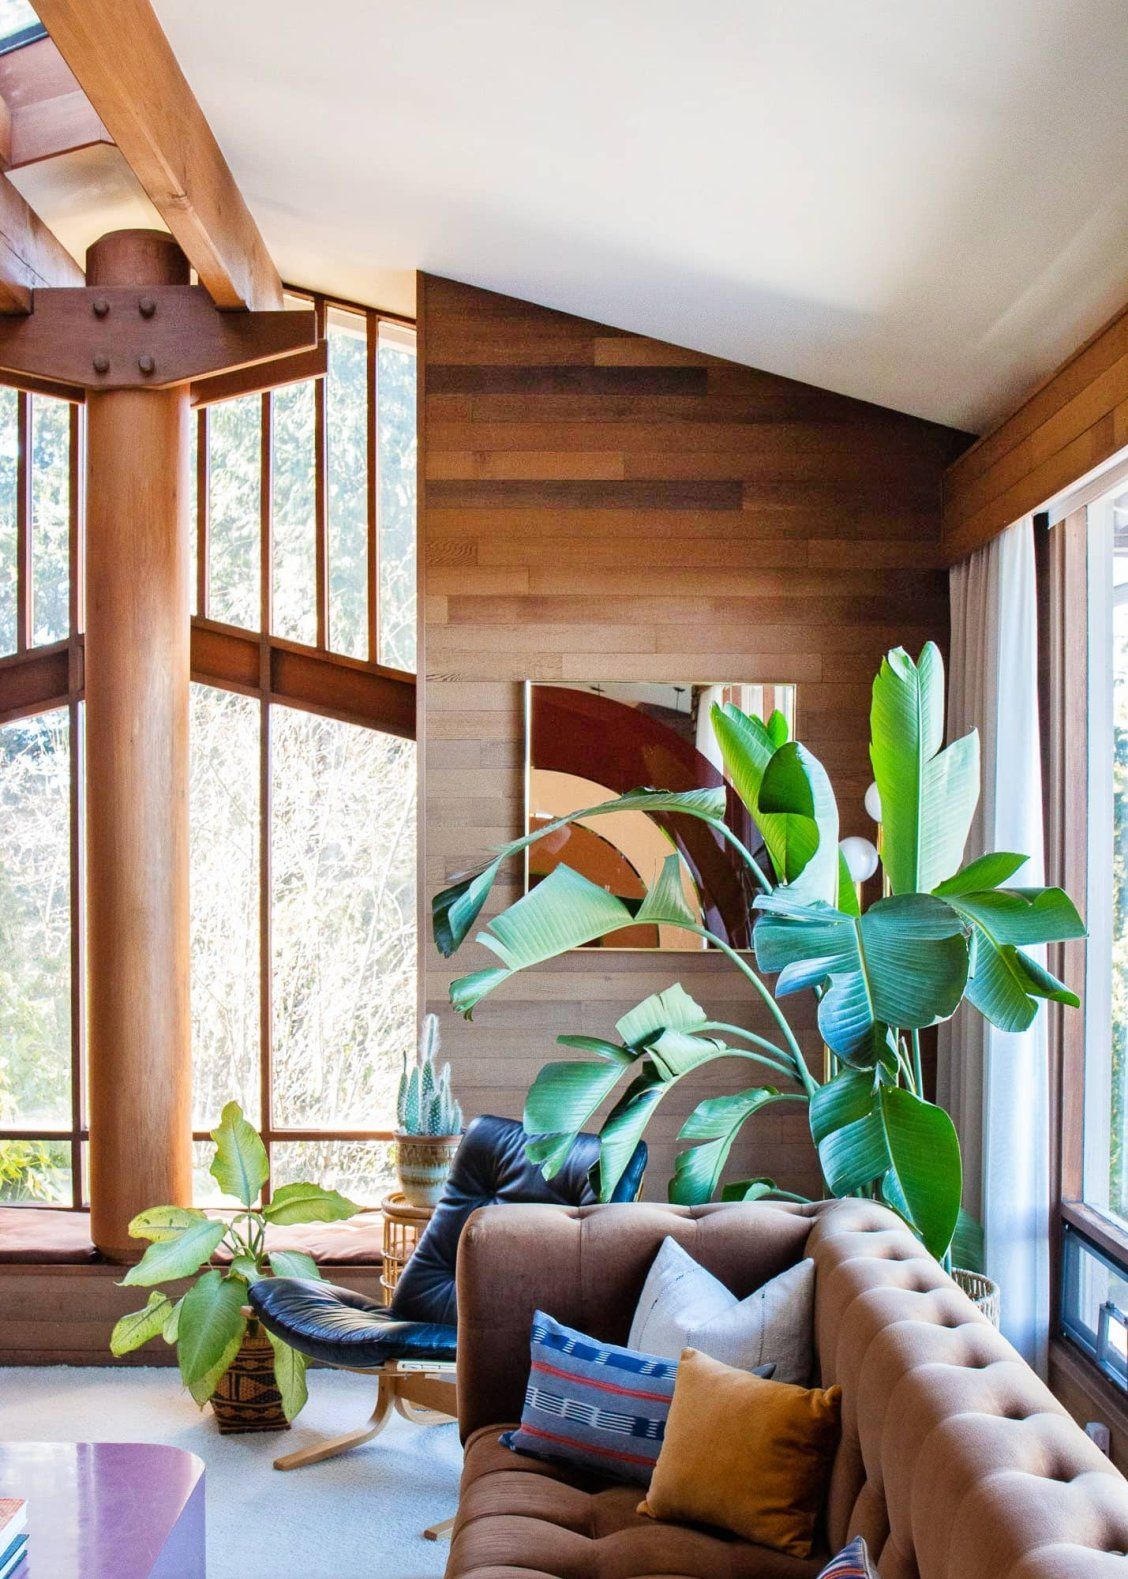 Mid Century Tropical Vibes Meet Cabin Retreat In This Home With